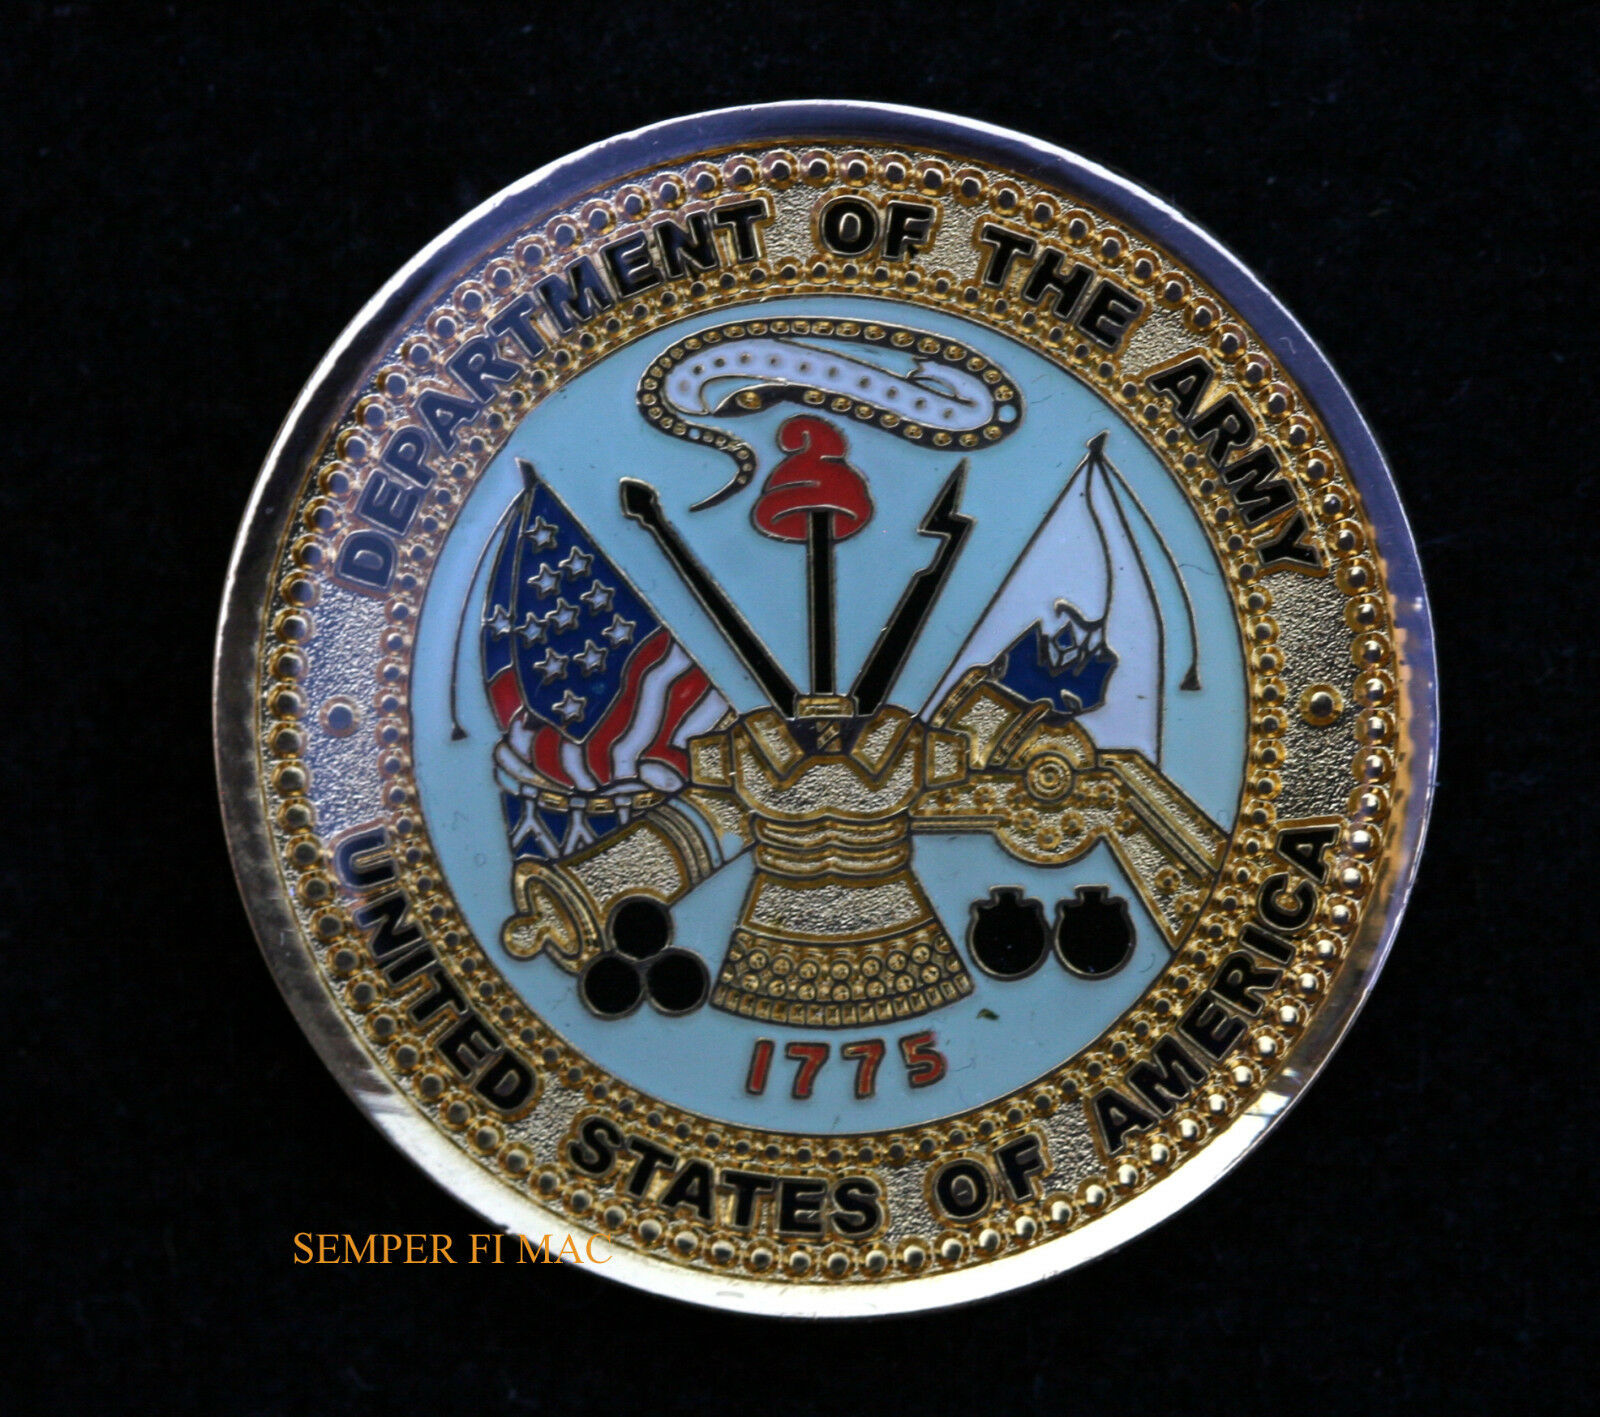 Details about GRADUATION GIFT BASIC TRAINING US ARMY CHALLENGE COIN CAV BOOT CAMP PIN UP WOW